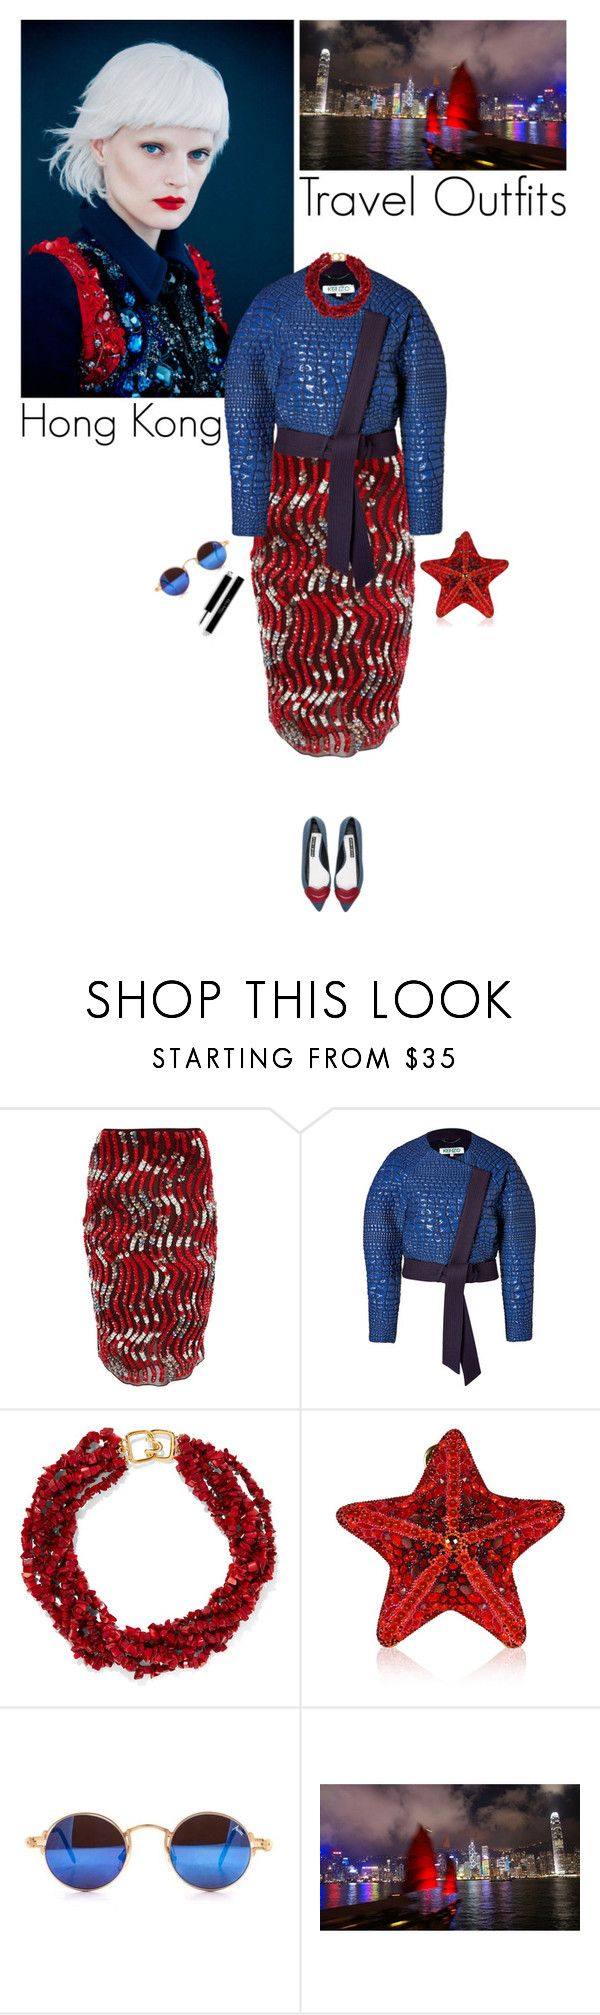 """""""Hong Kong"""" by helena99 ❤ liked on Polyvore featuring GUINEVERE, Peter Pilotto, Kenzo, Kenneth Jay Lane, Judith Leiber, National Geographic Home and Alice + Olivia"""